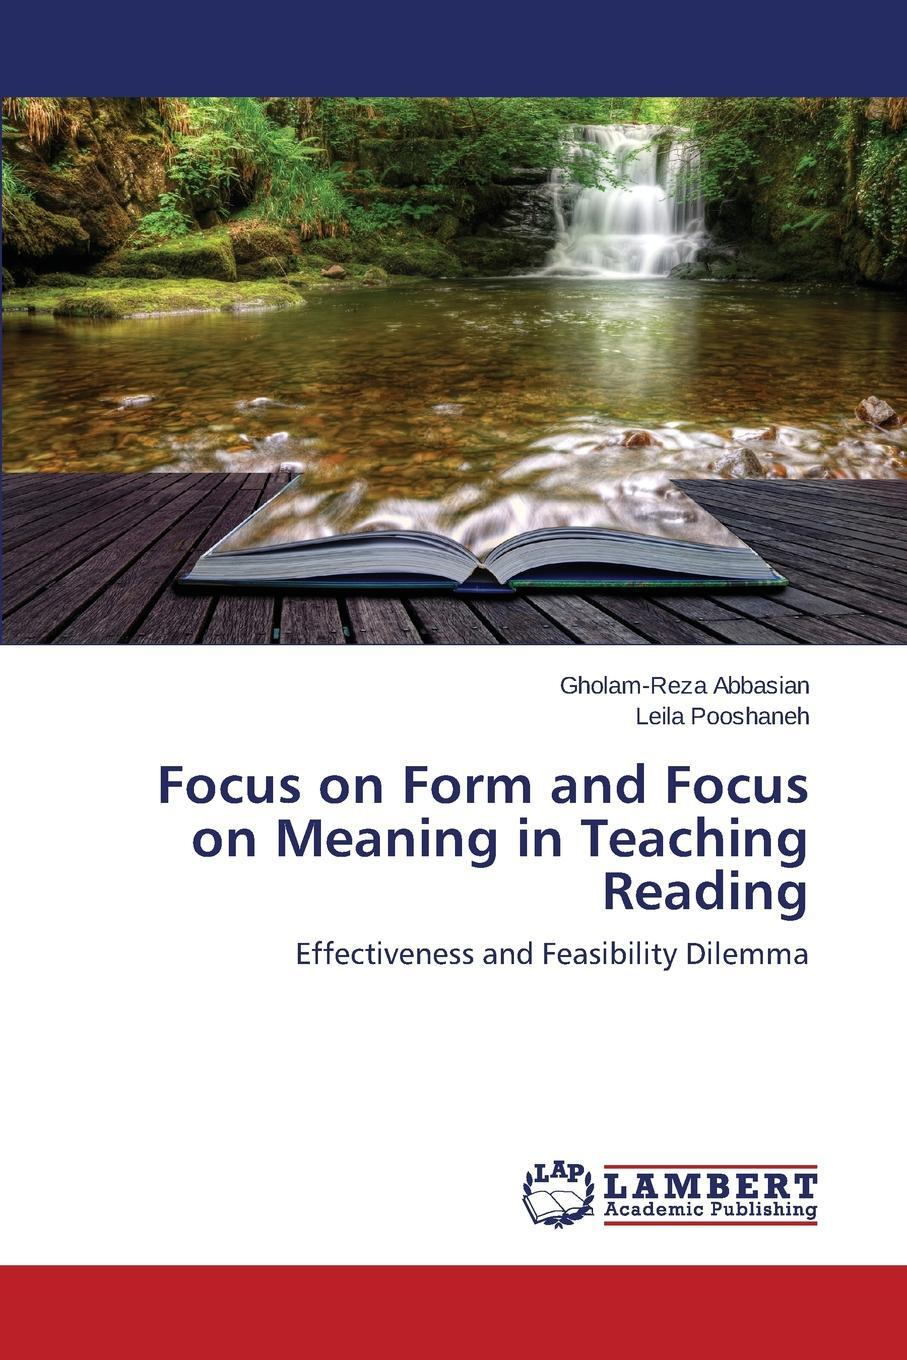 Focus on Form and Focus on Meaning in Teaching Reading. Abbasian Gholam-Reza, Pooshaneh Leila